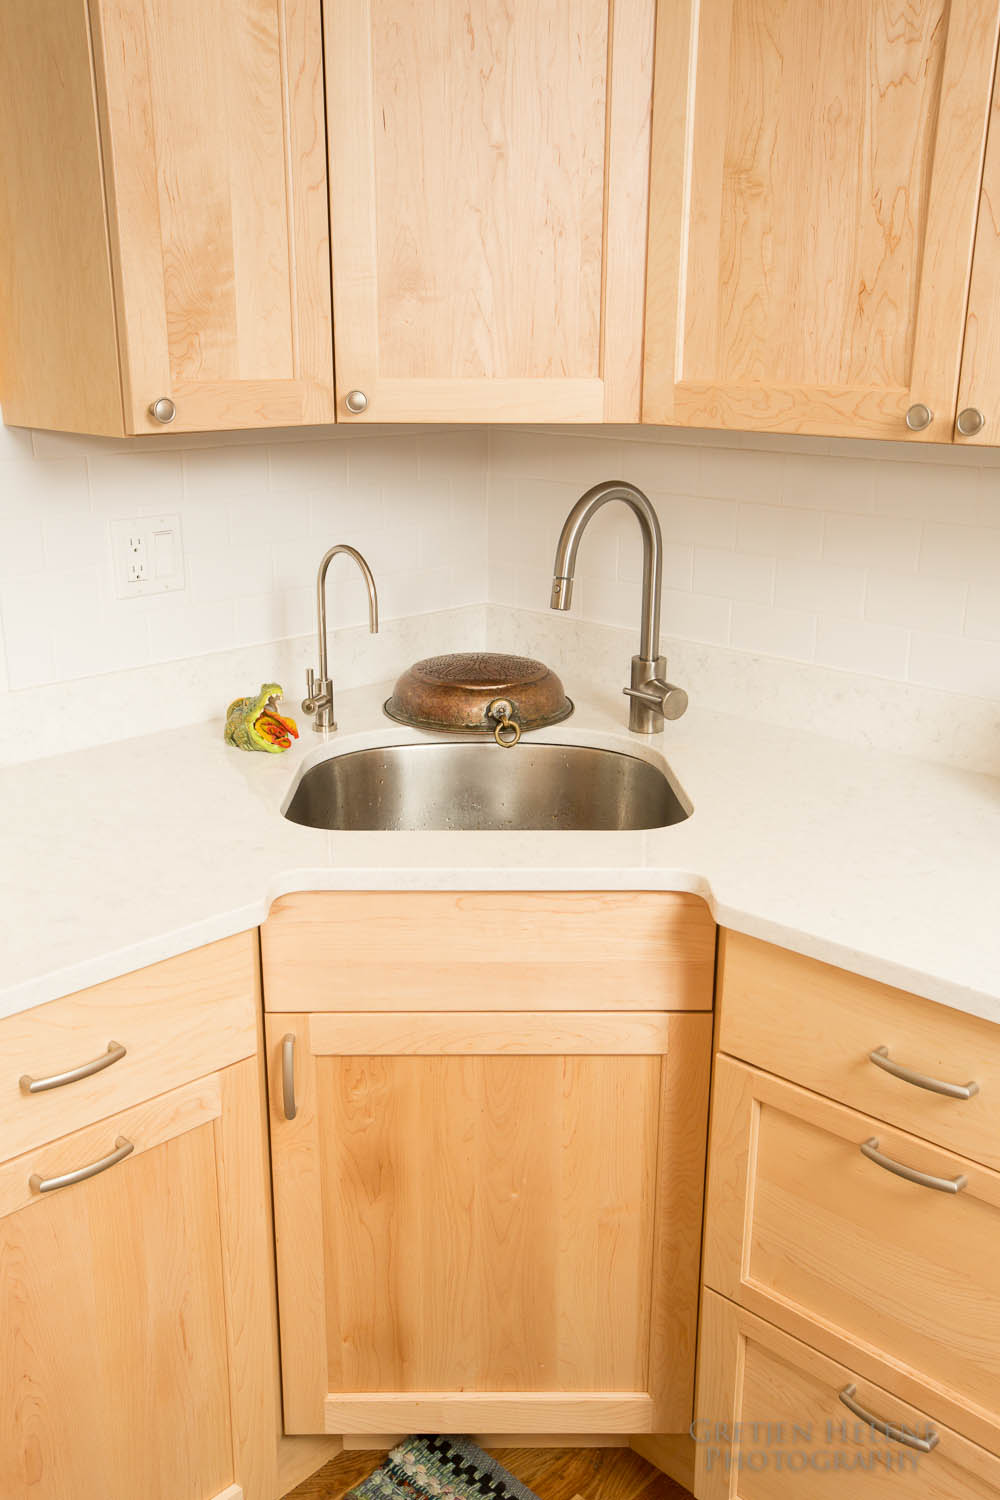 Kitchens from Boston Building Resources — Boston Building ... on Natural Maple Maple Cabinets With Quartz Countertops  id=90214